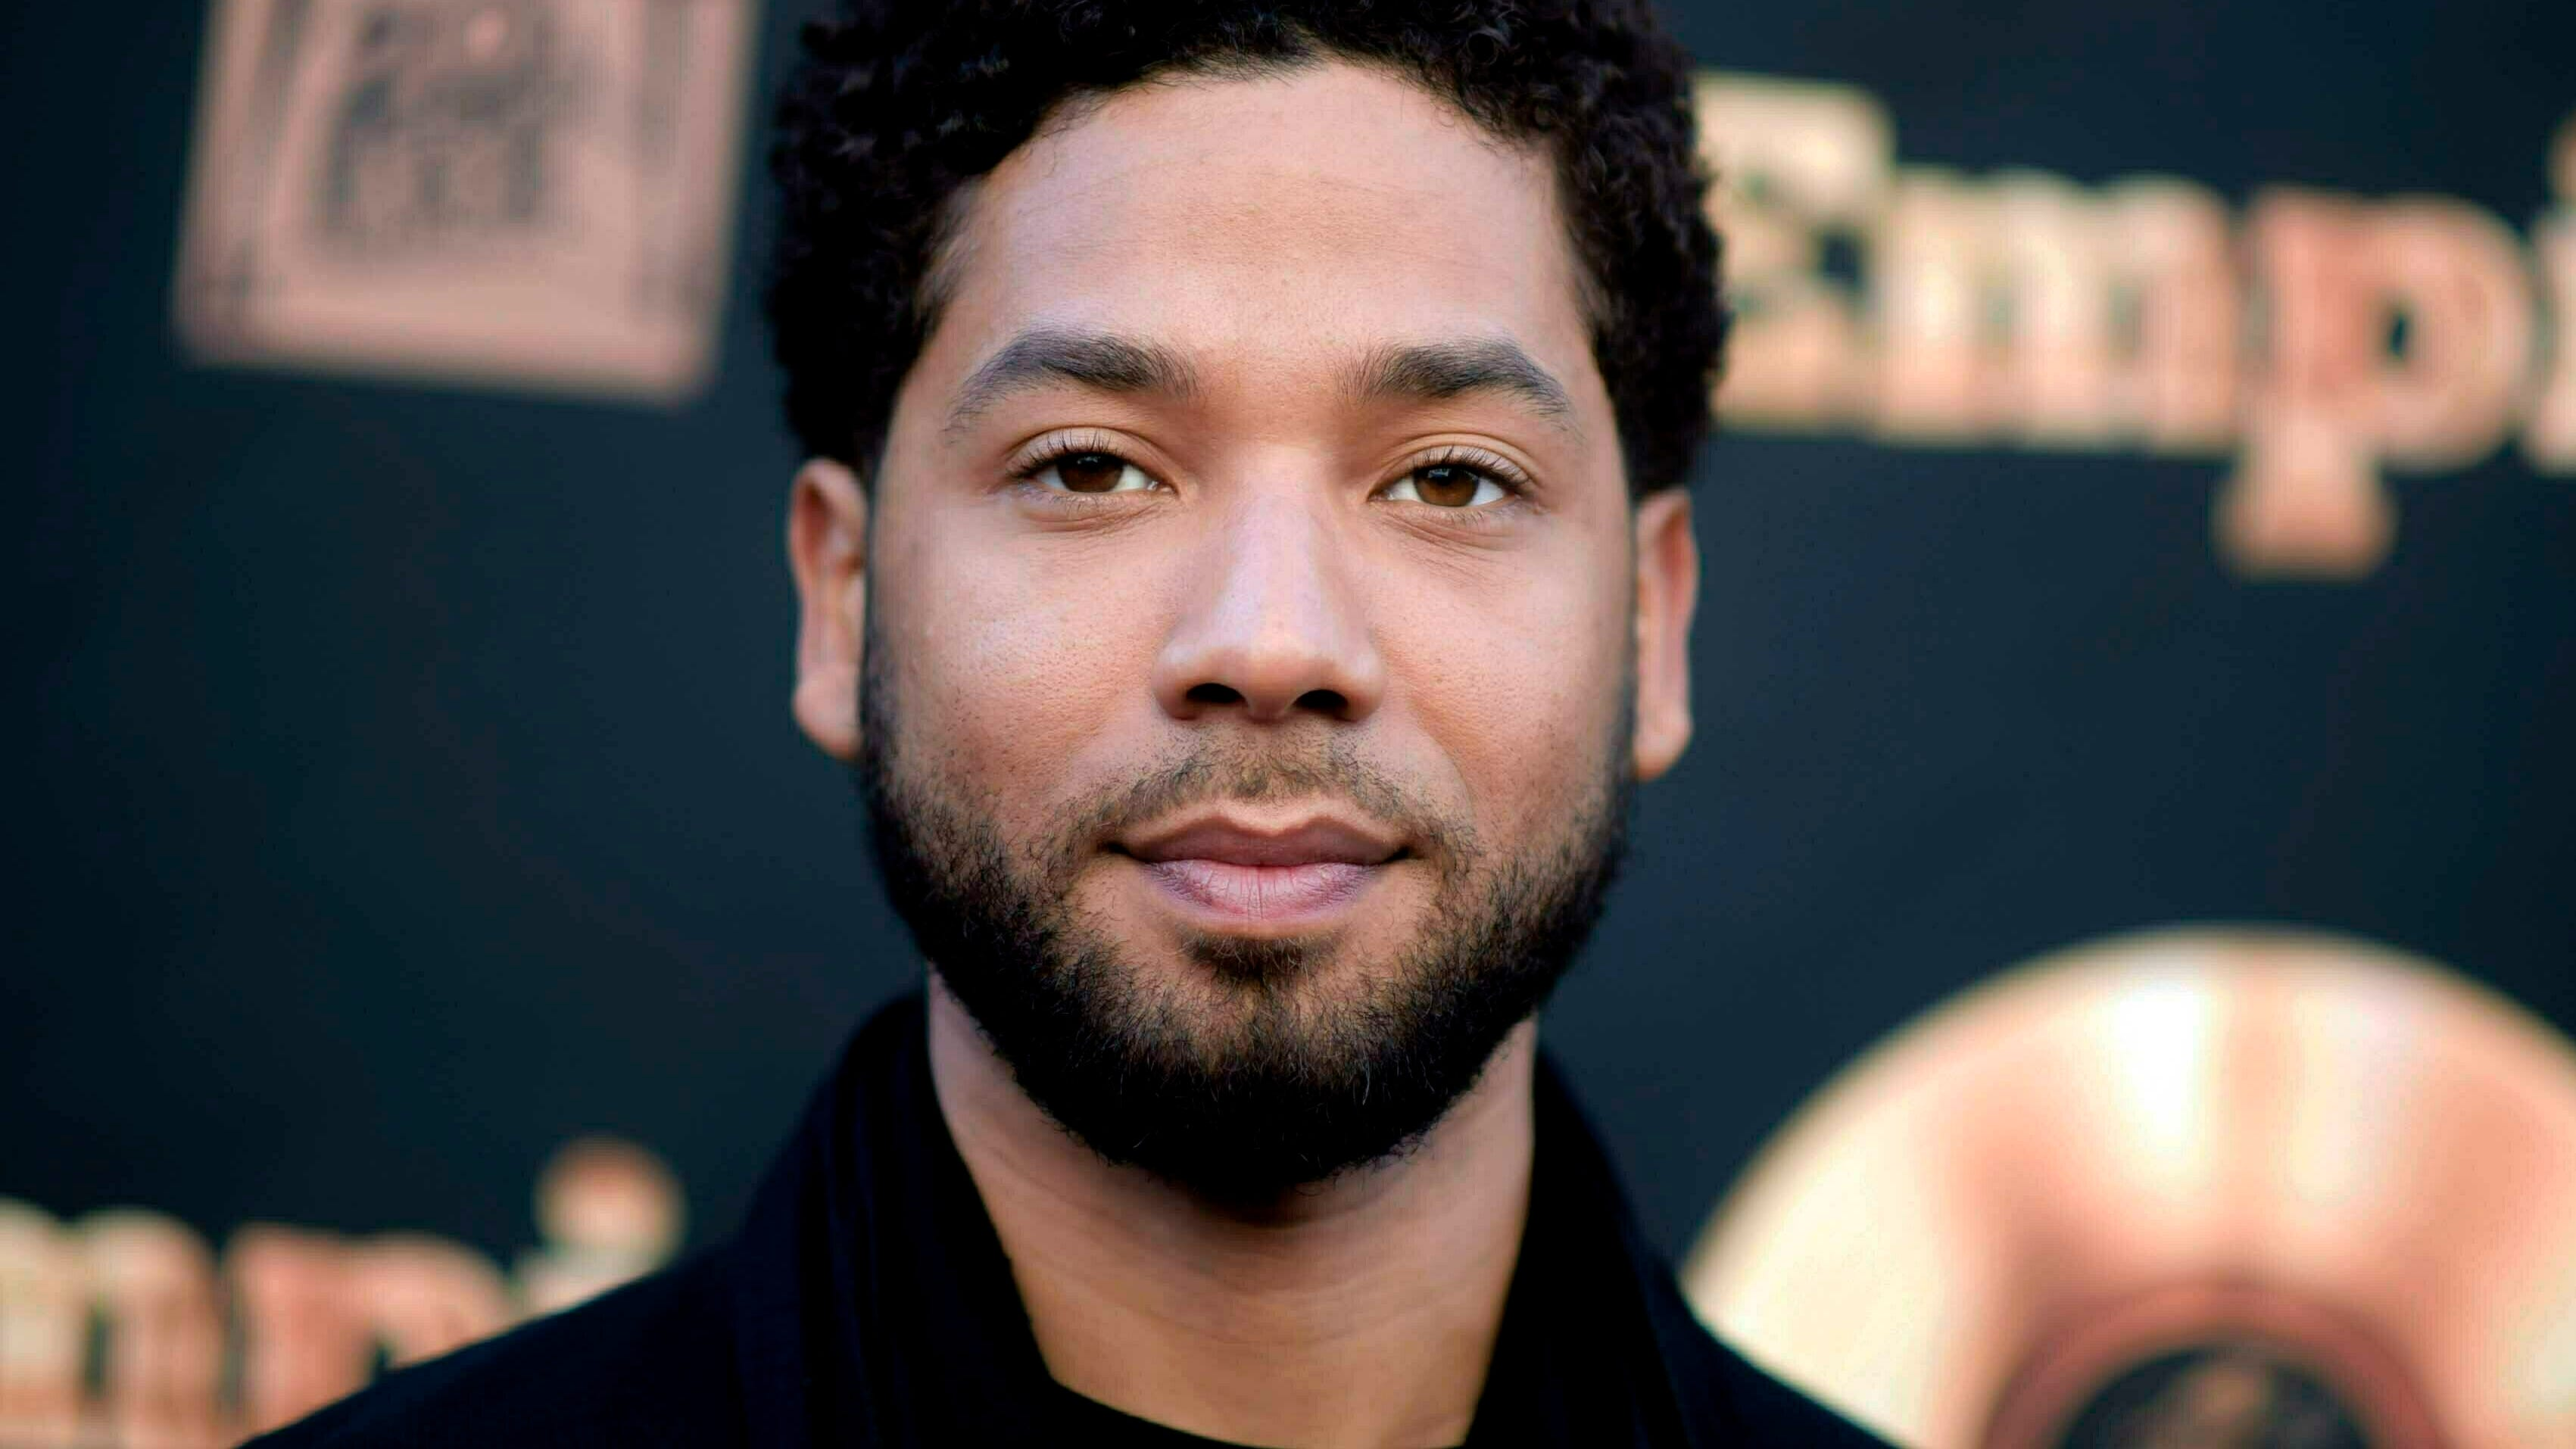 Jussie Smollett is charged with disorderly conduct for filing false police report in attack